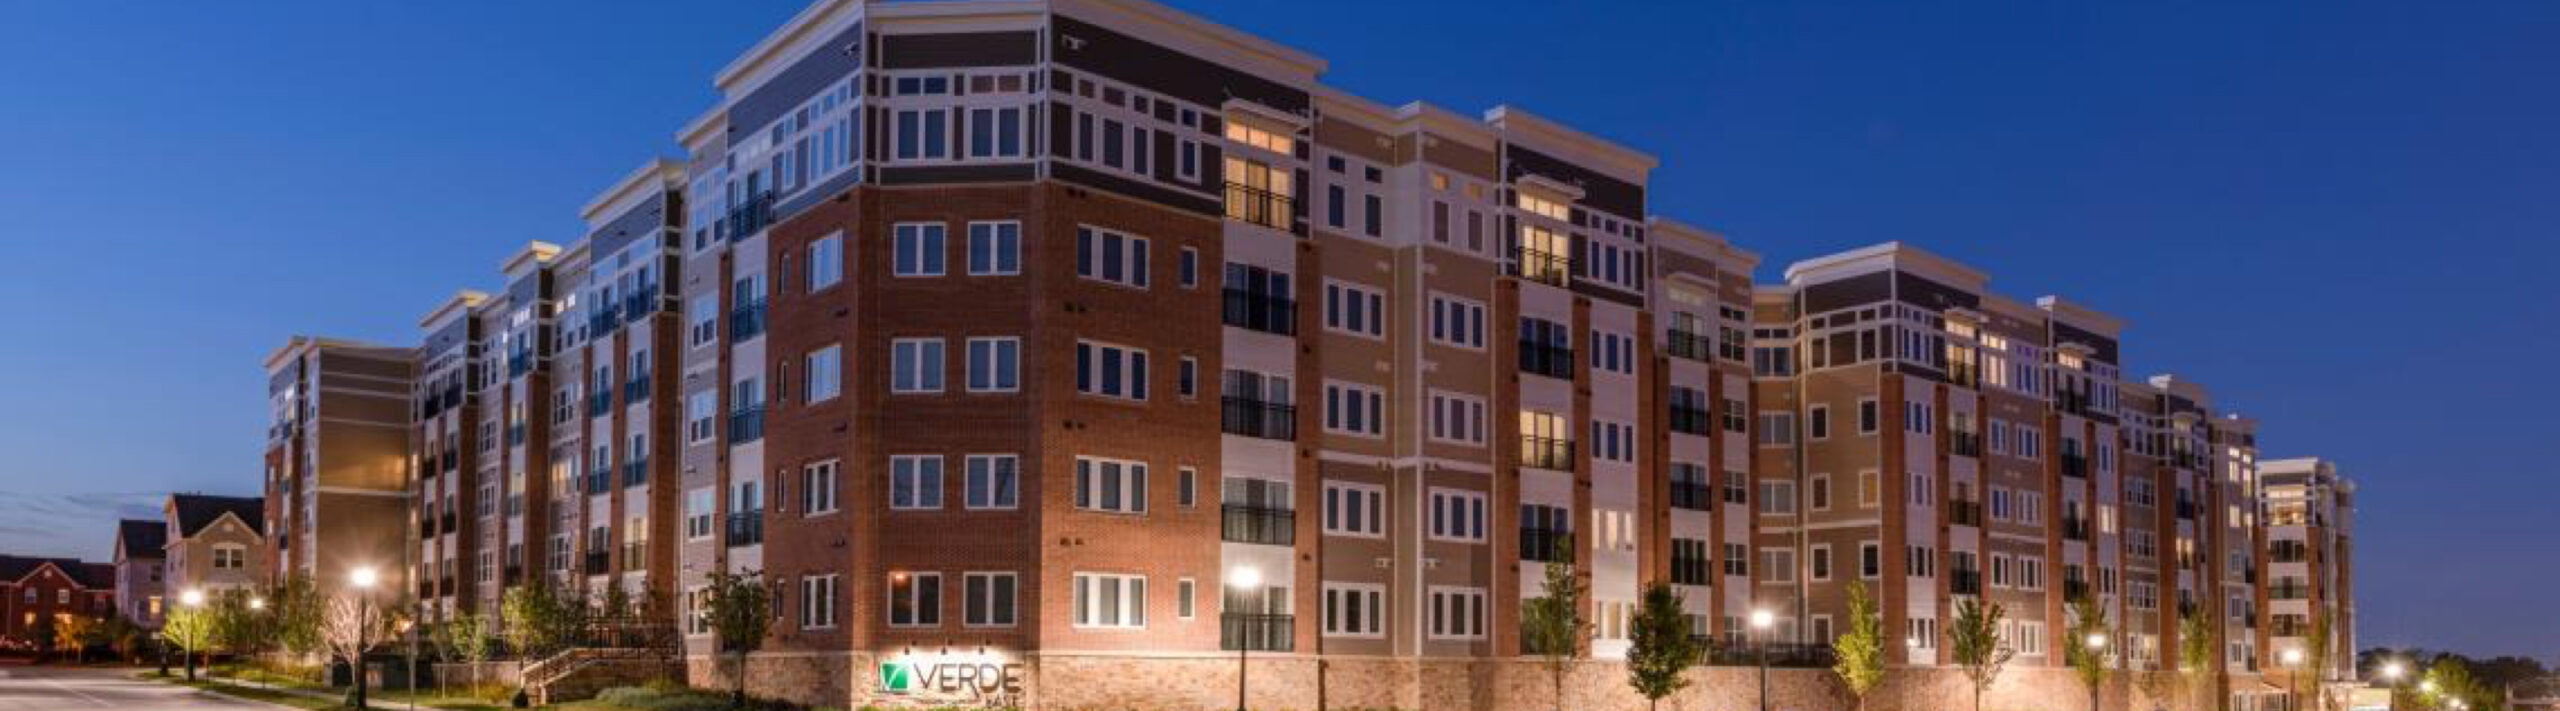 View of the Verde Apartments building that Dolben manages in Maryland